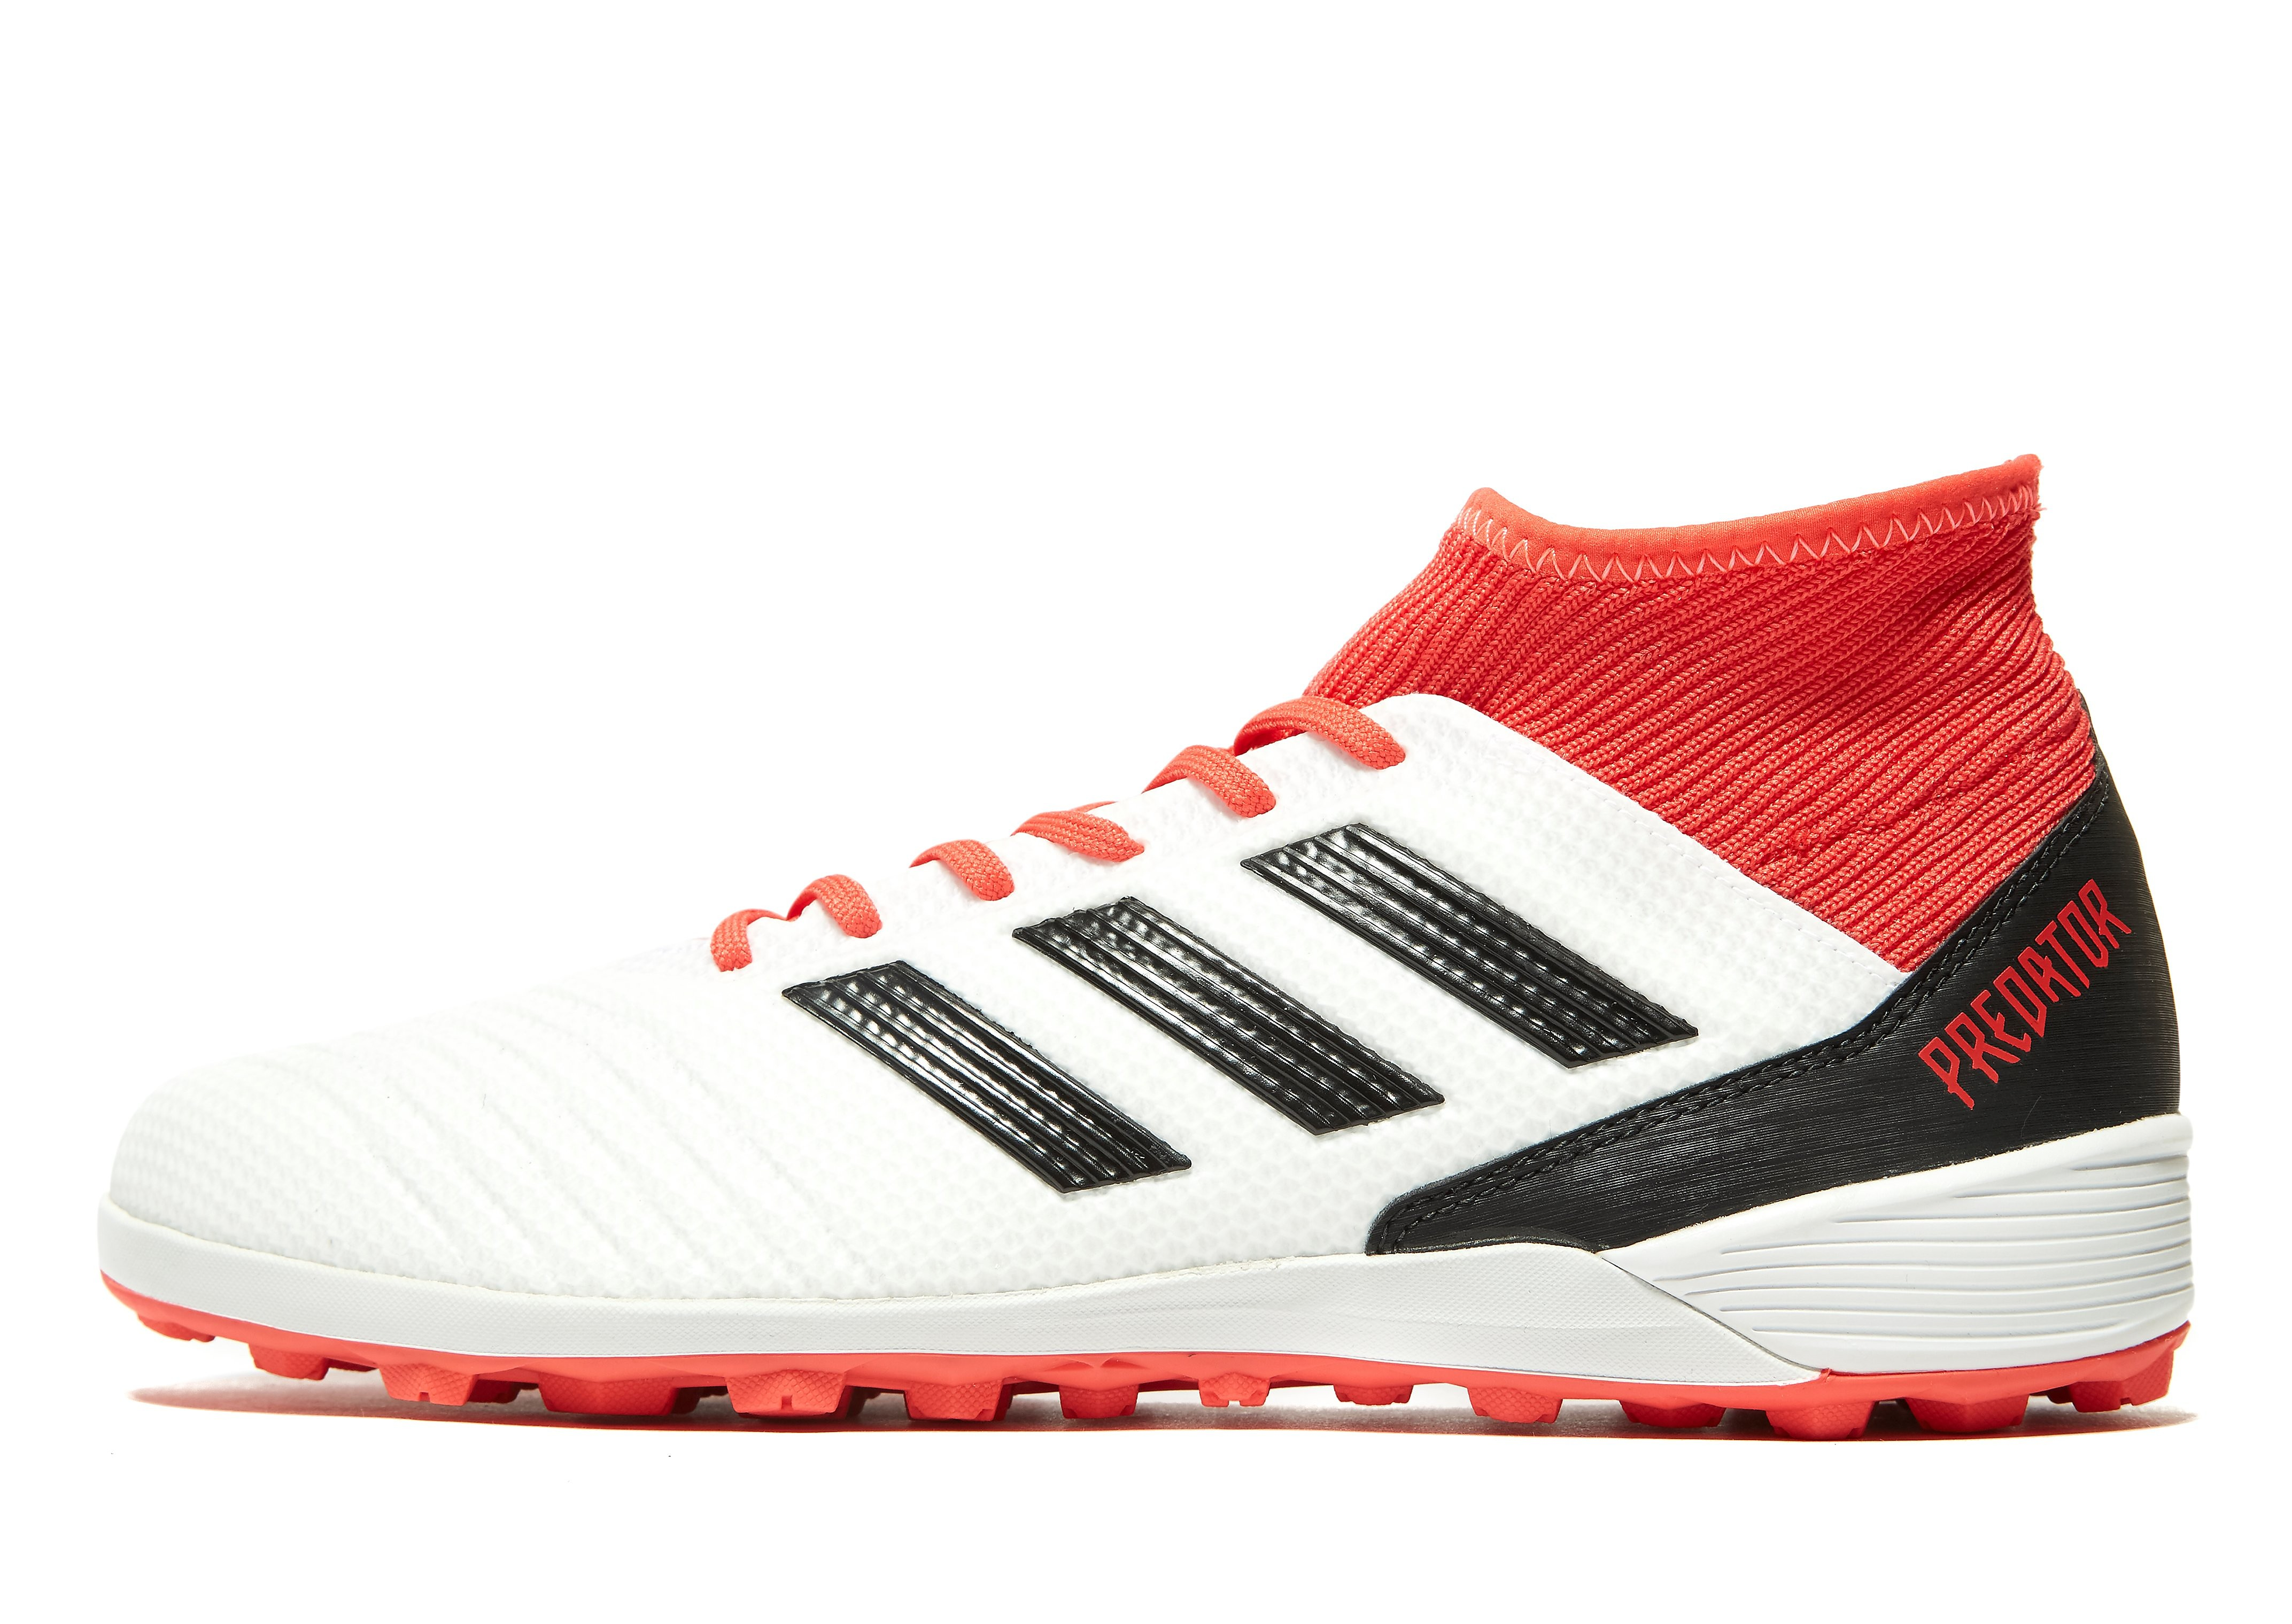 adidas Cold Blooded Predator 18.3 TF